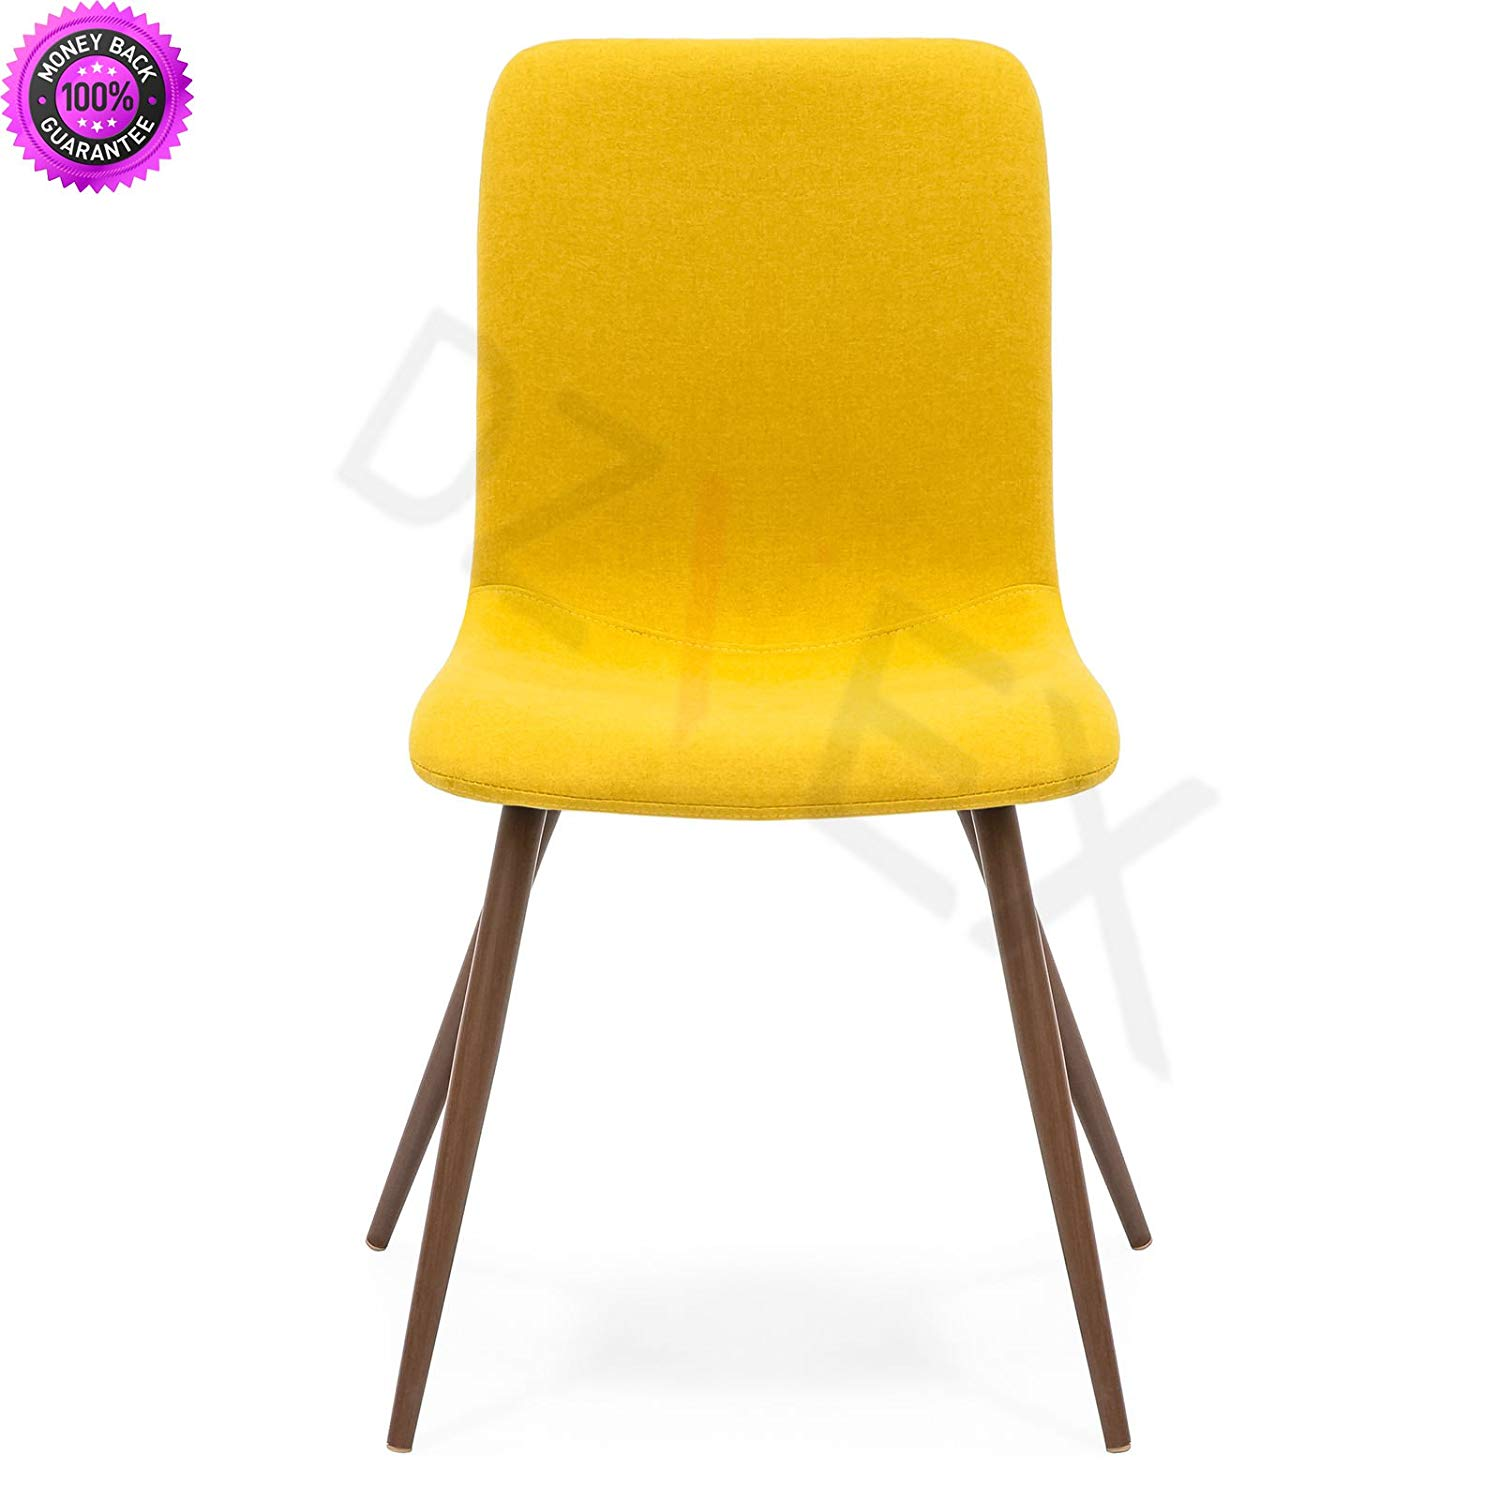 waiting room chairs for sale 2 person kitchen table chair sets cheap find deals on line at get quotations dzvex set 4 mid century modern dining fabric upholstery wood legs yellow and restaurant